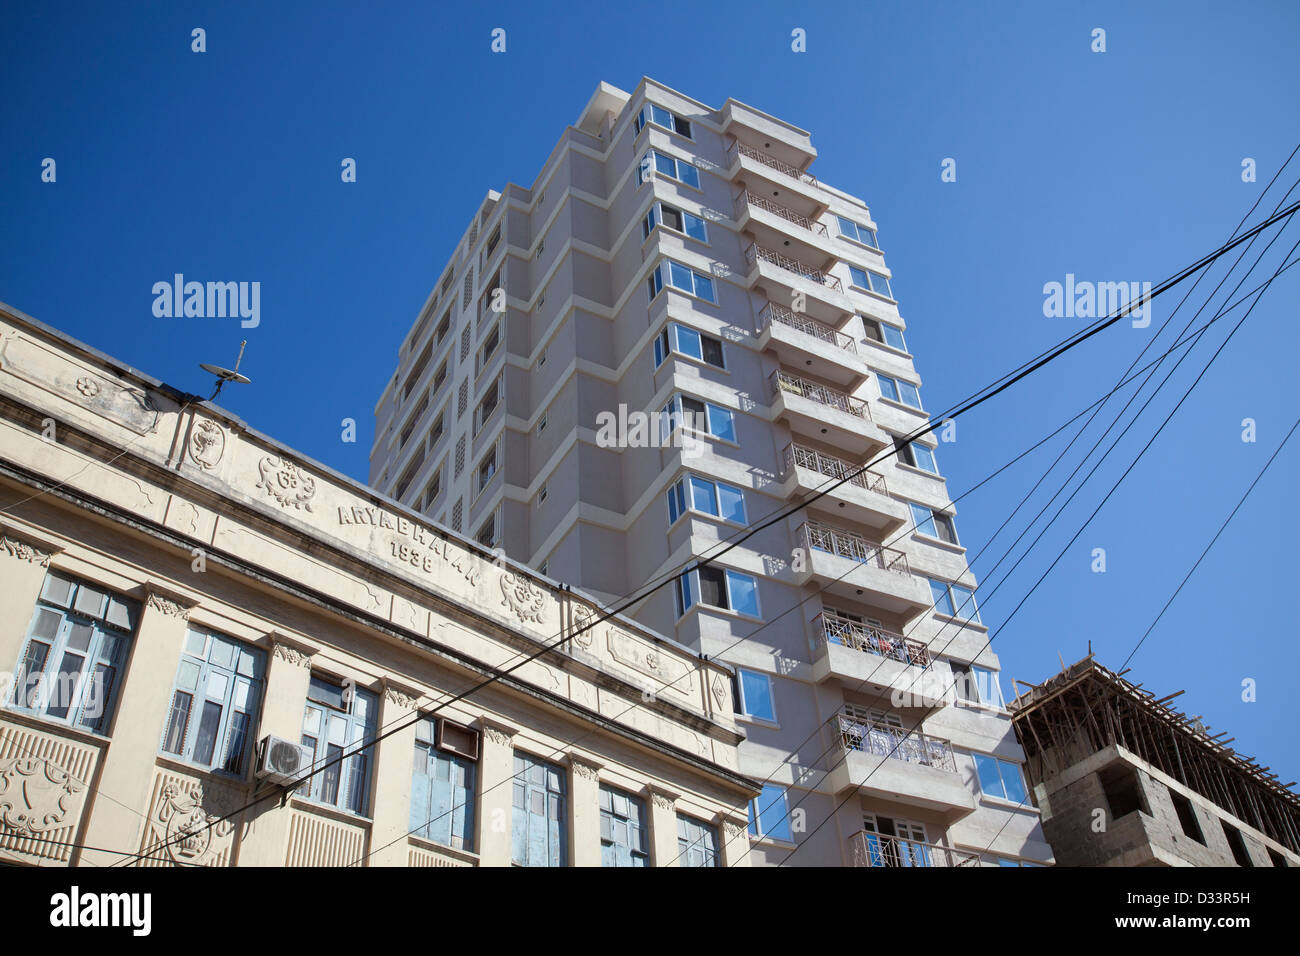 1930's indian building with new high rise in background, Dar es Salaam, Tanzania. - Stock Image